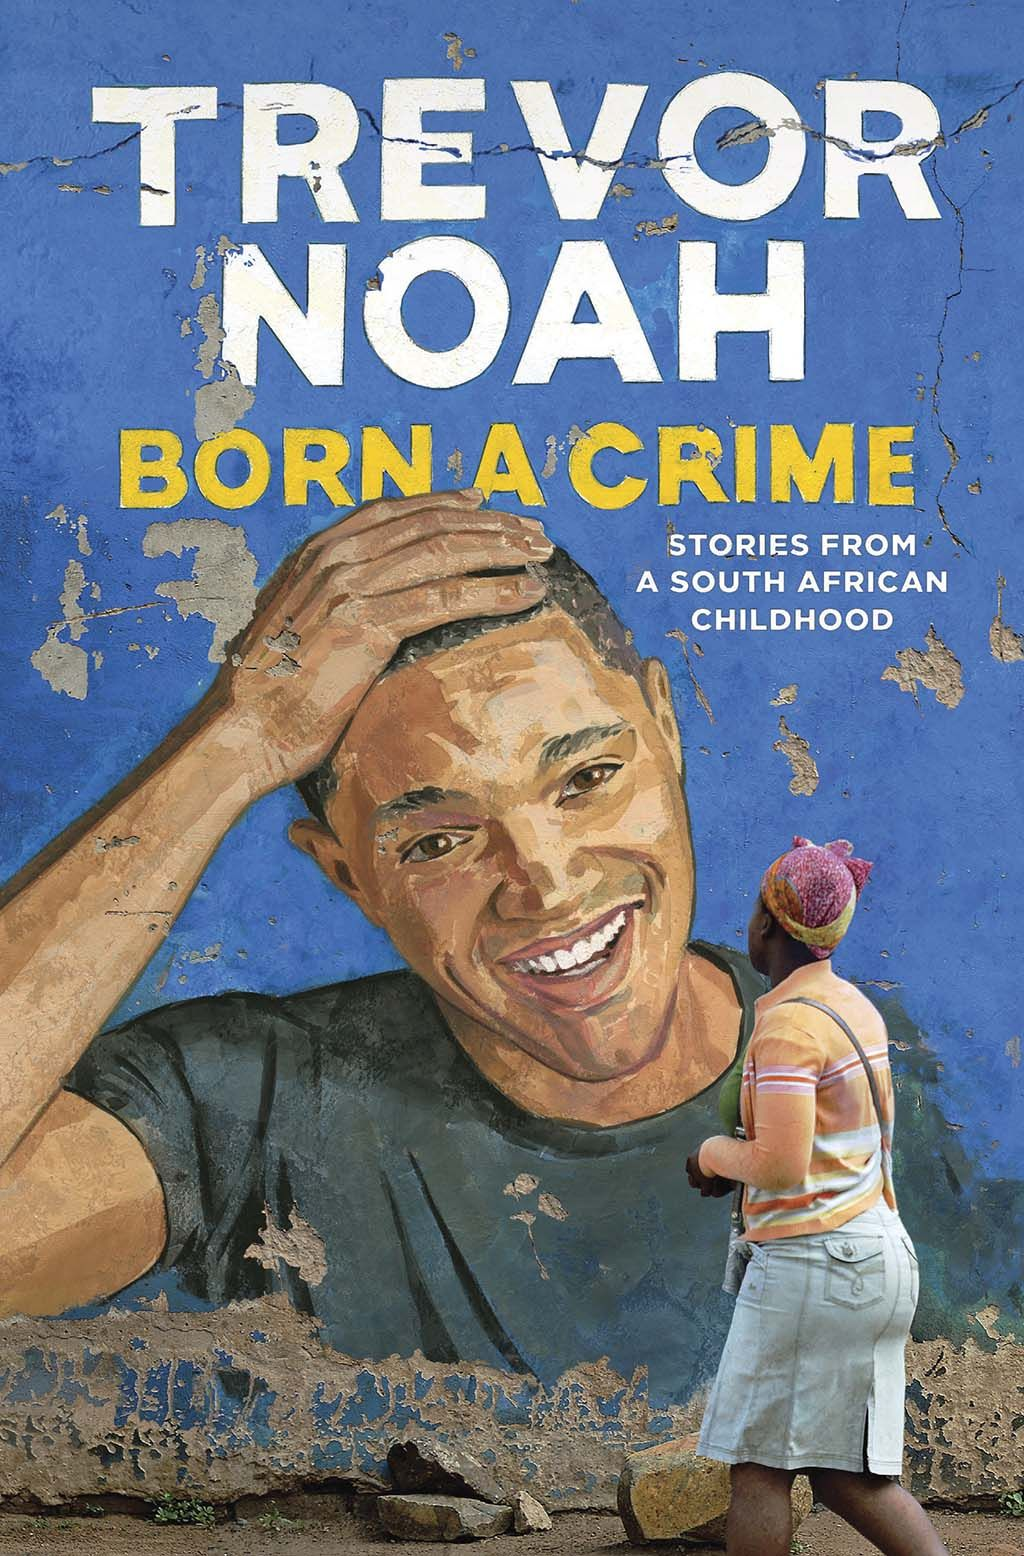 77b928a21db9 Trevor Noah s Born a Crime intrigued me ever since I heard his interview  with Terry Gross on Fresh Air. I was never a fan of his until that  interview